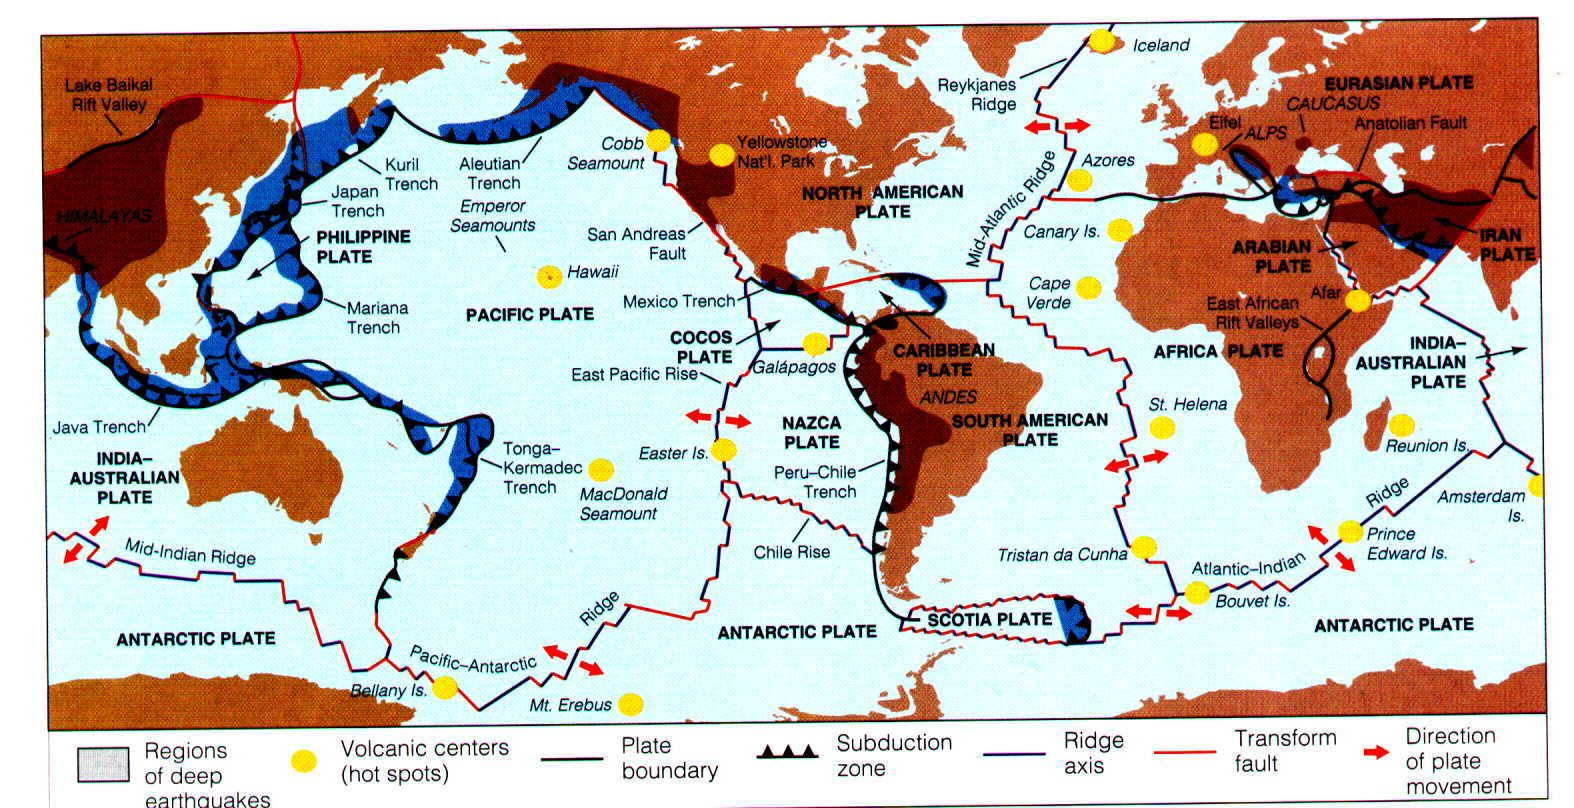 Theory Of Plate Tectonics The Slow Shifting Of The